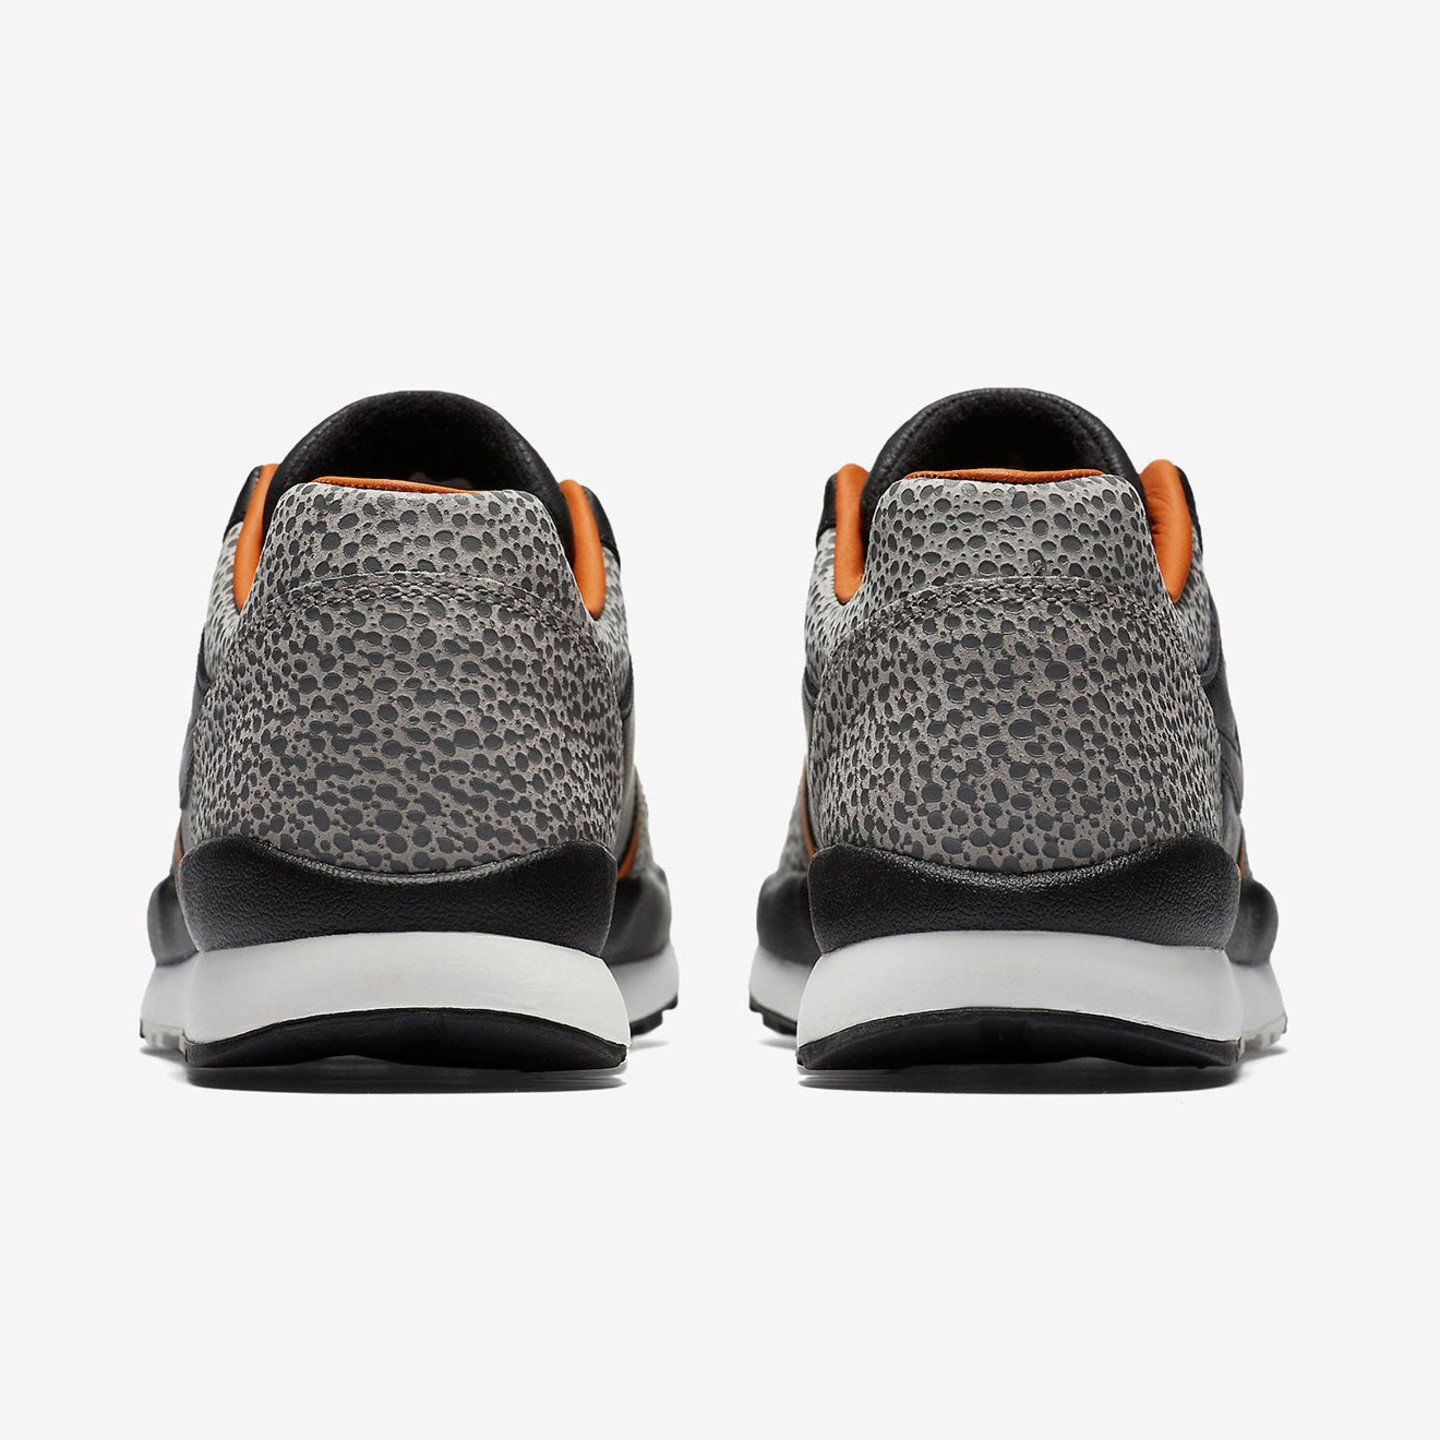 Nike Air Safari OG Black / Monrach / Cobblestone AO3295-001